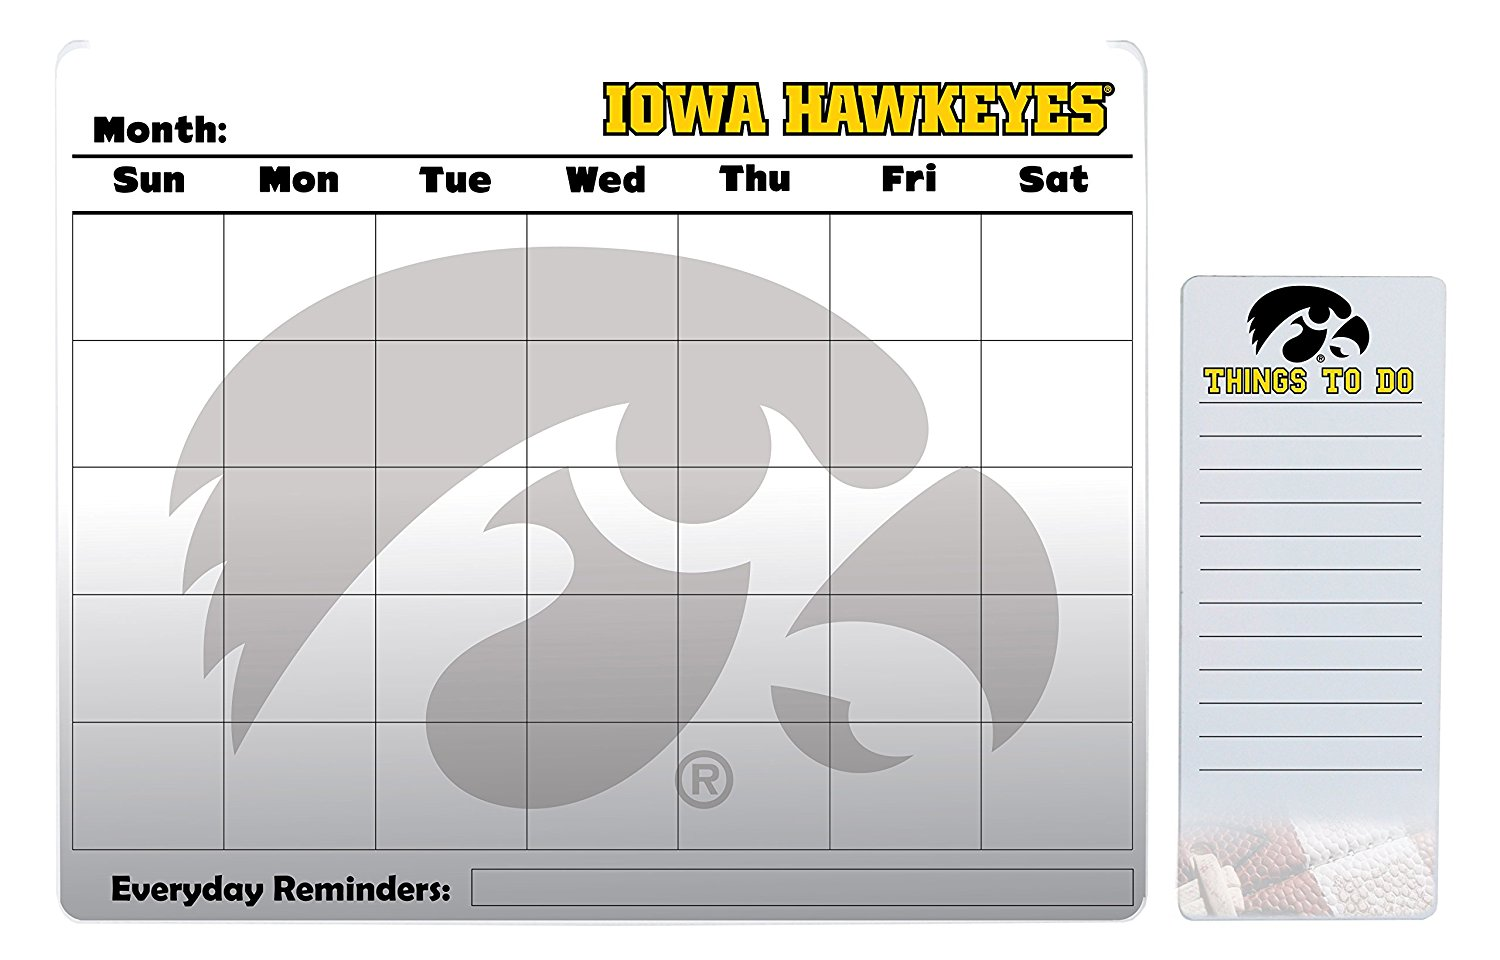 "Iowa Hawkeyes 16"" x 20"" Dry Erase Calendar Peel and Stick and 4"" x 10"" Dry Erase Board Peel and Stick"